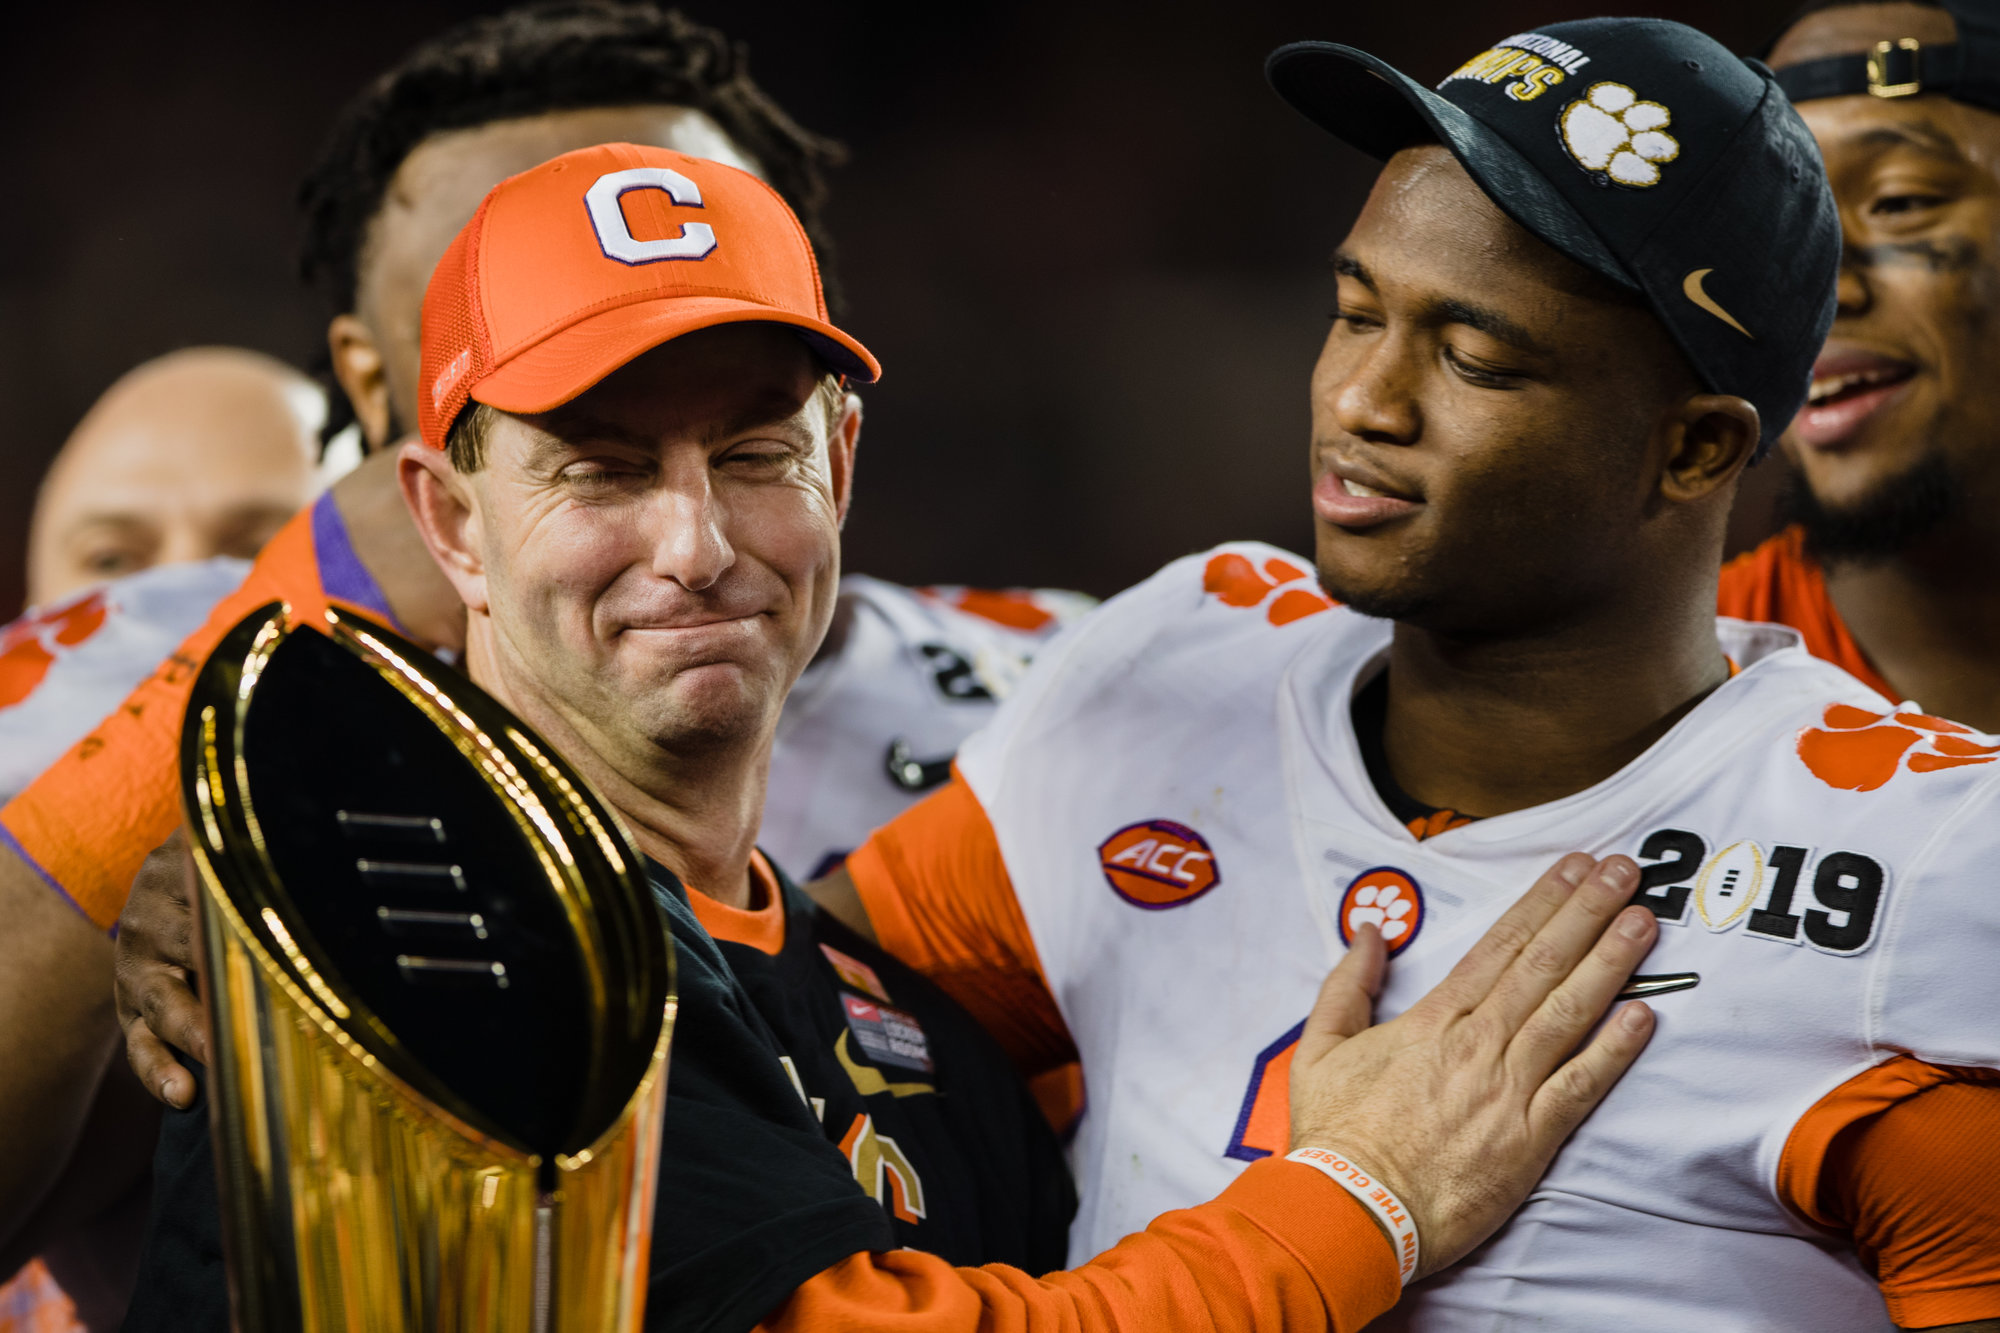 Clemson head coach Dabo Swinney and cornerback Trayvon Mullen, defensive MVP for the 2019 CFP National Championship, stand with the trophy at Levi's Stadium in Santa Clara, California, on Monday, Jan. 7 after the Tigers routed Alabama 44-16 to win their second title in three years.